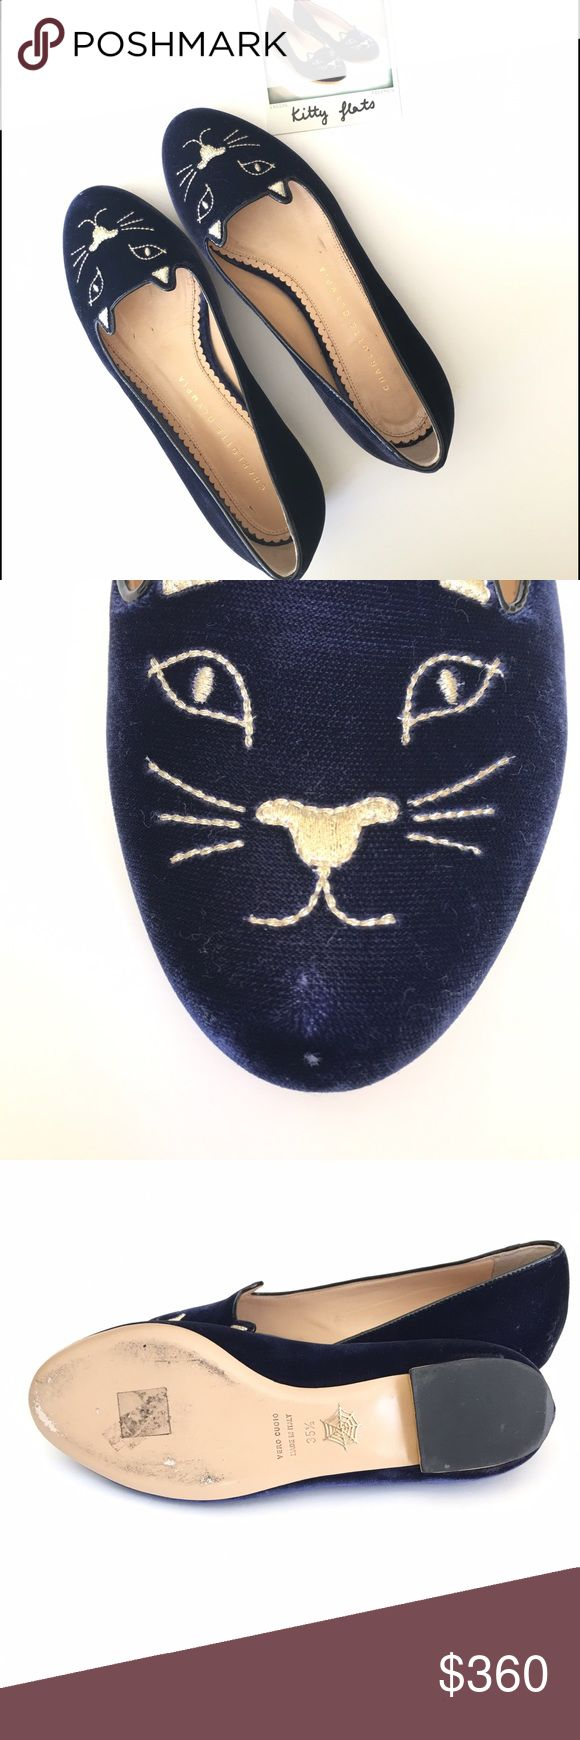 Charlotte Olympia kitty flats size 5.5 Charlotte Olympia Kitty Flats in navy velvet  Size 5.5  Preowned: ligthly used bottom soles show signs of wear, a few scuff marks might be found please refer to pictures.  Comes with box and dustbag Charlotte Olympia kitty flats  An eye-catching smoking slipper is embroidered at the toe with shining metallic thread in a saucy cat face—while a polished golden heel rand adds an extra kick of gleam. Slip-on style.Leather or textile upper/leather lining and…